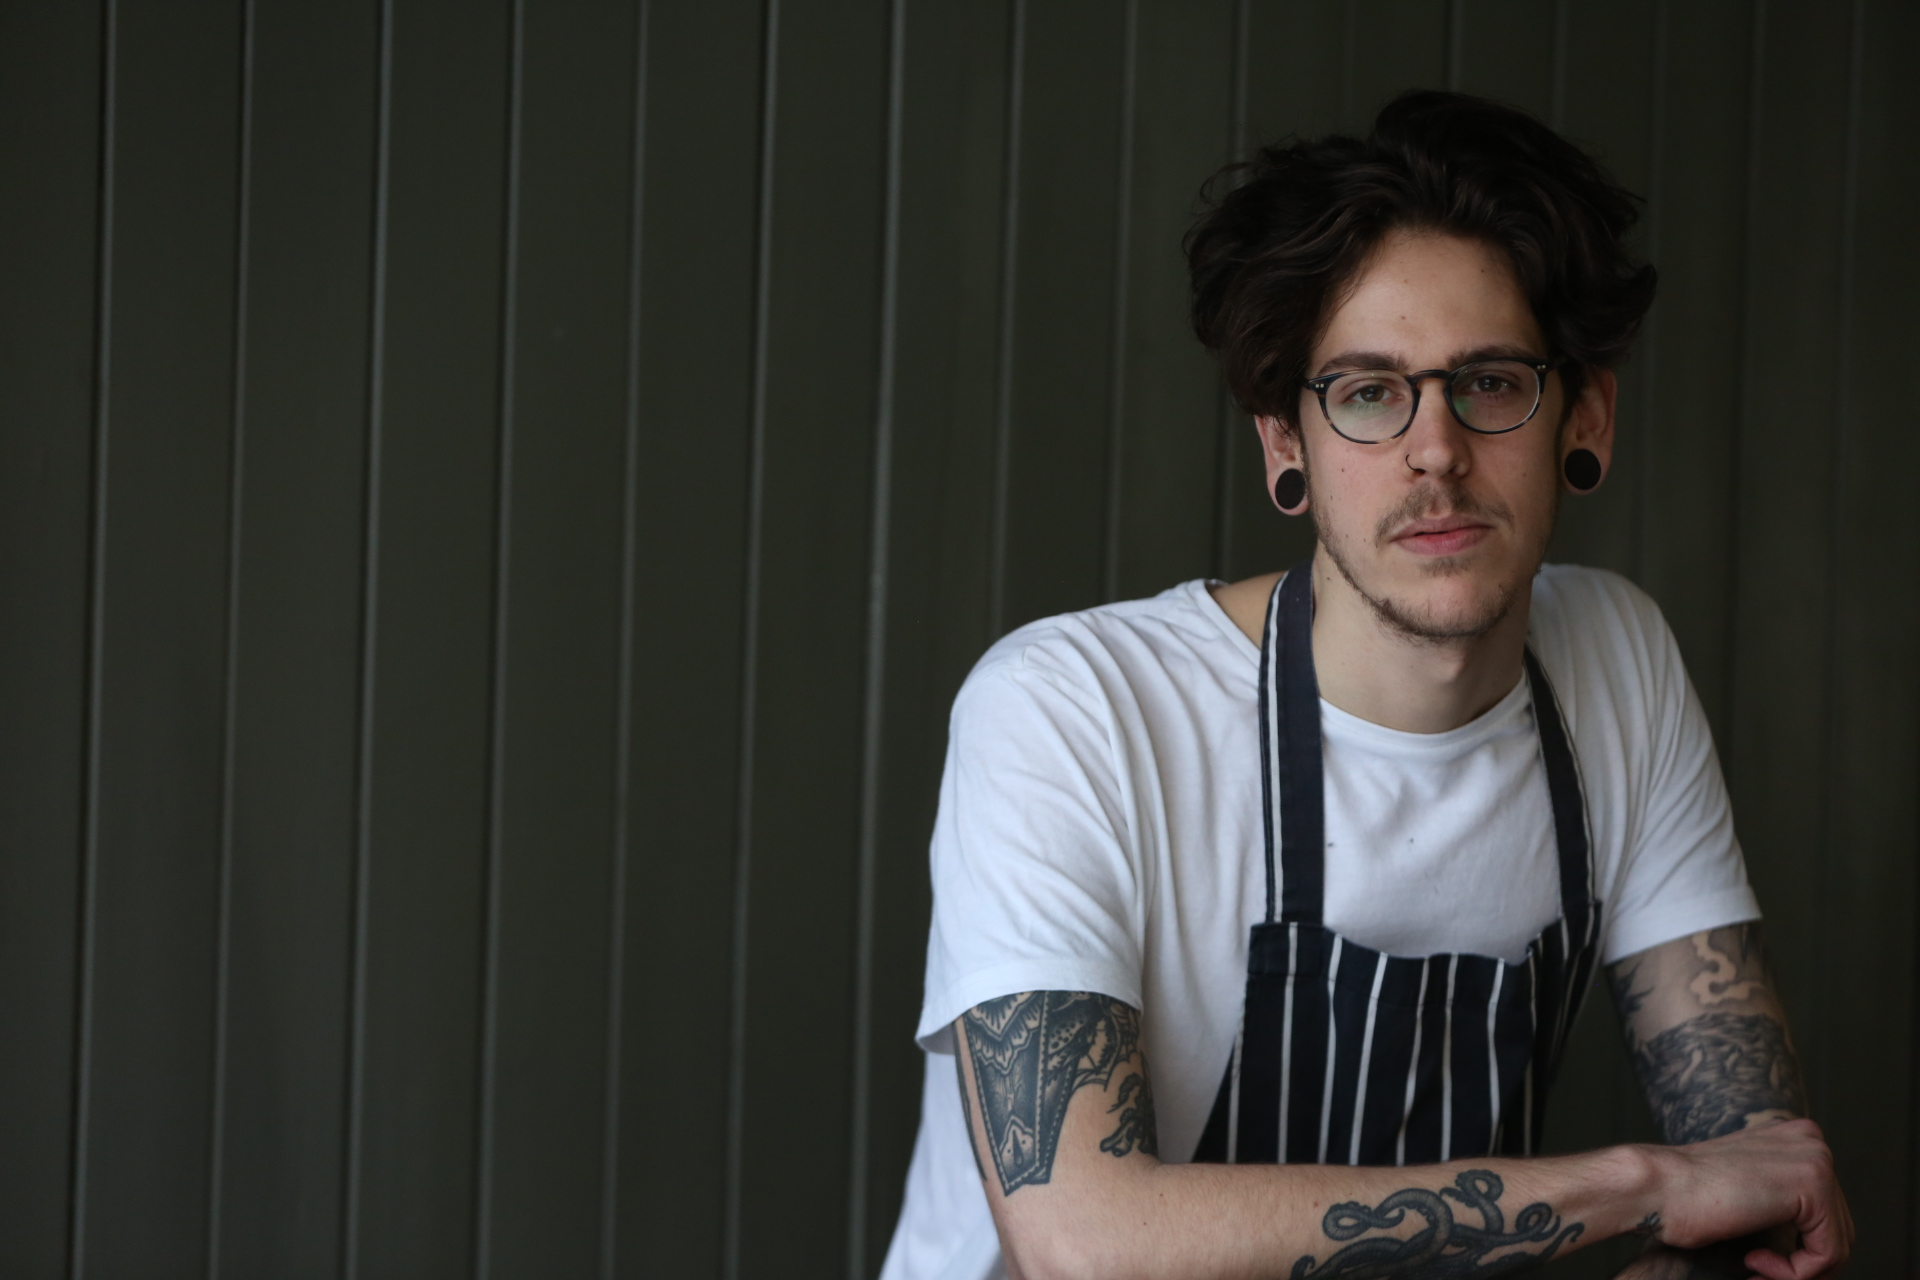 Edinburgh Food Studio Portraits14919.JPG